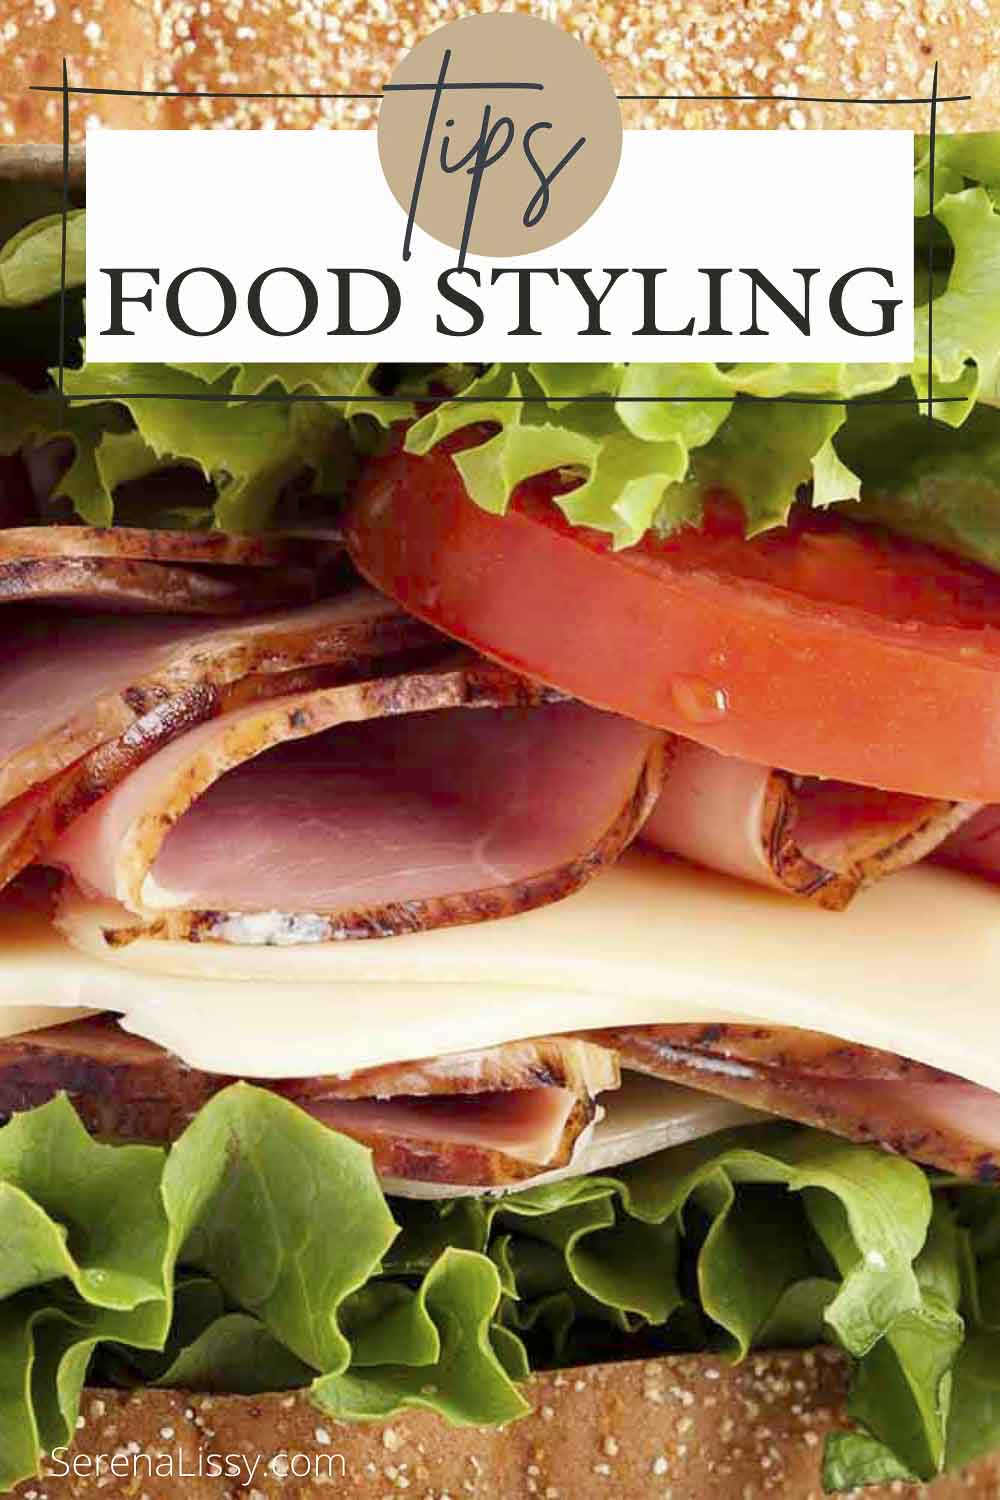 Food Styling with Ham Sandwich